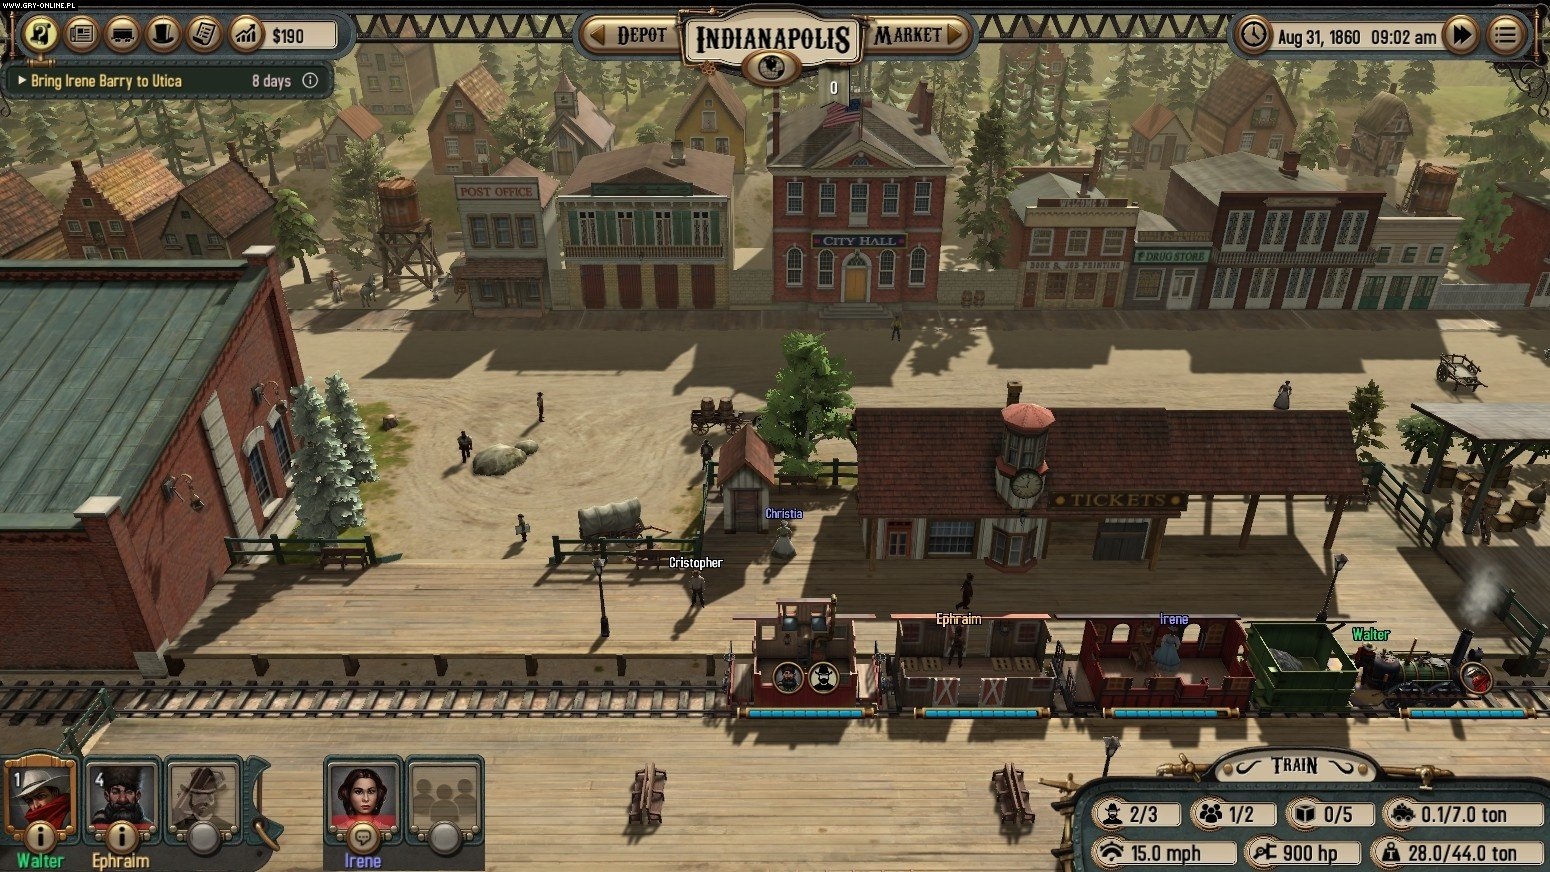 Bounty Train PC Games Image 7/26, Corbie Games, Daedalic Entertainment